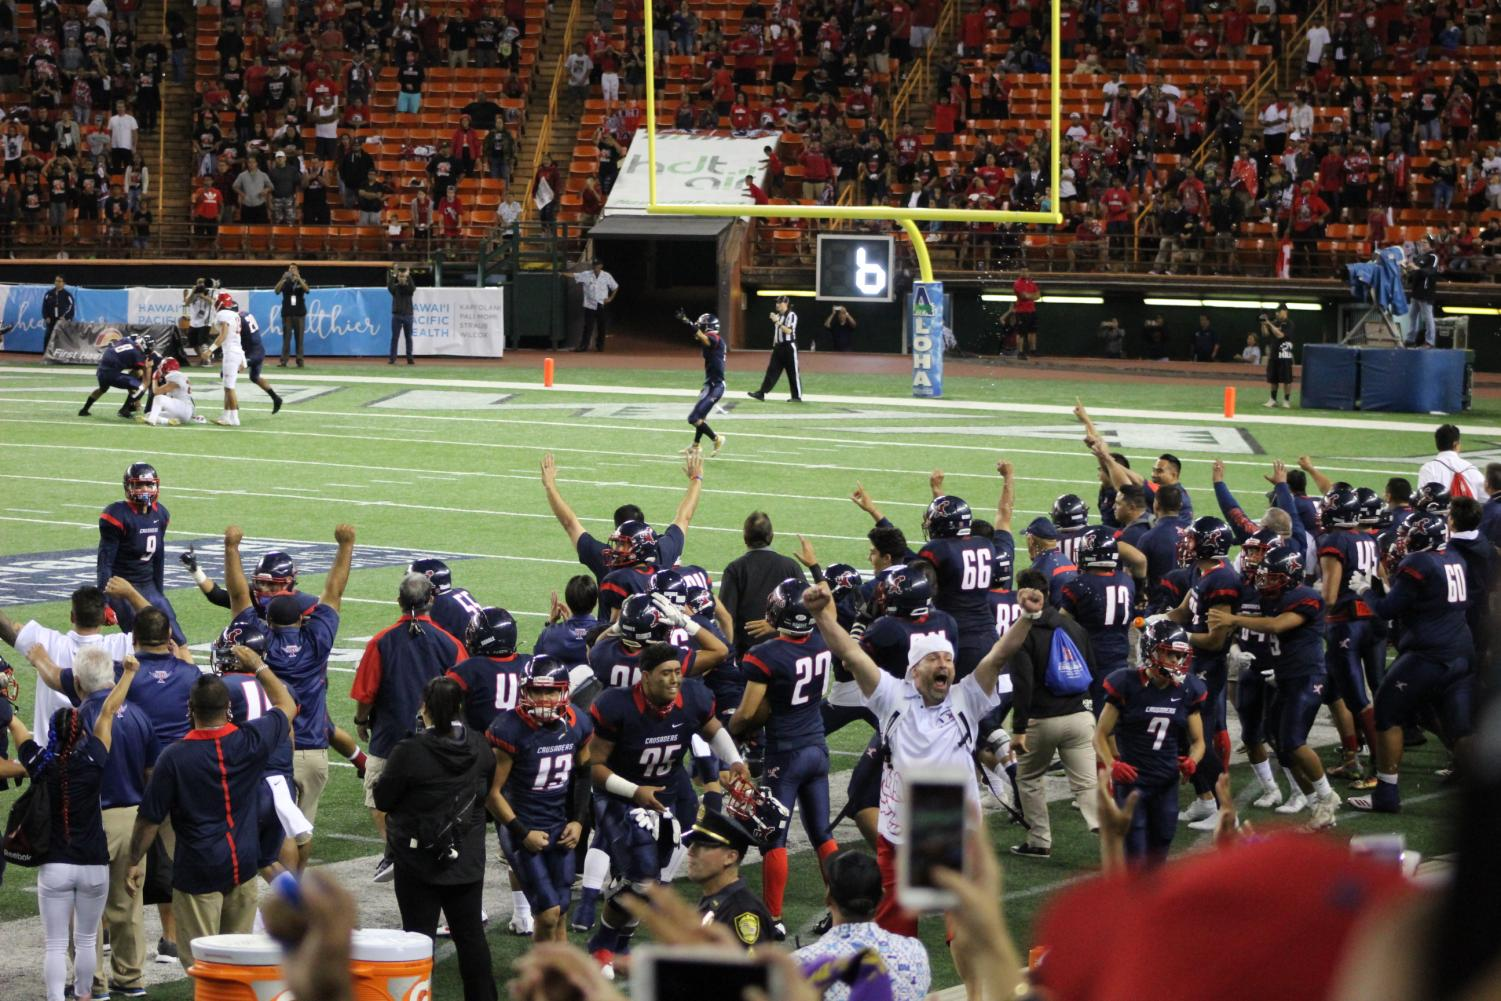 The Saint Louis Crusaders, along with fans, celebrate their victory over Kahuku. All photos courtesy of Melanie Constantino.